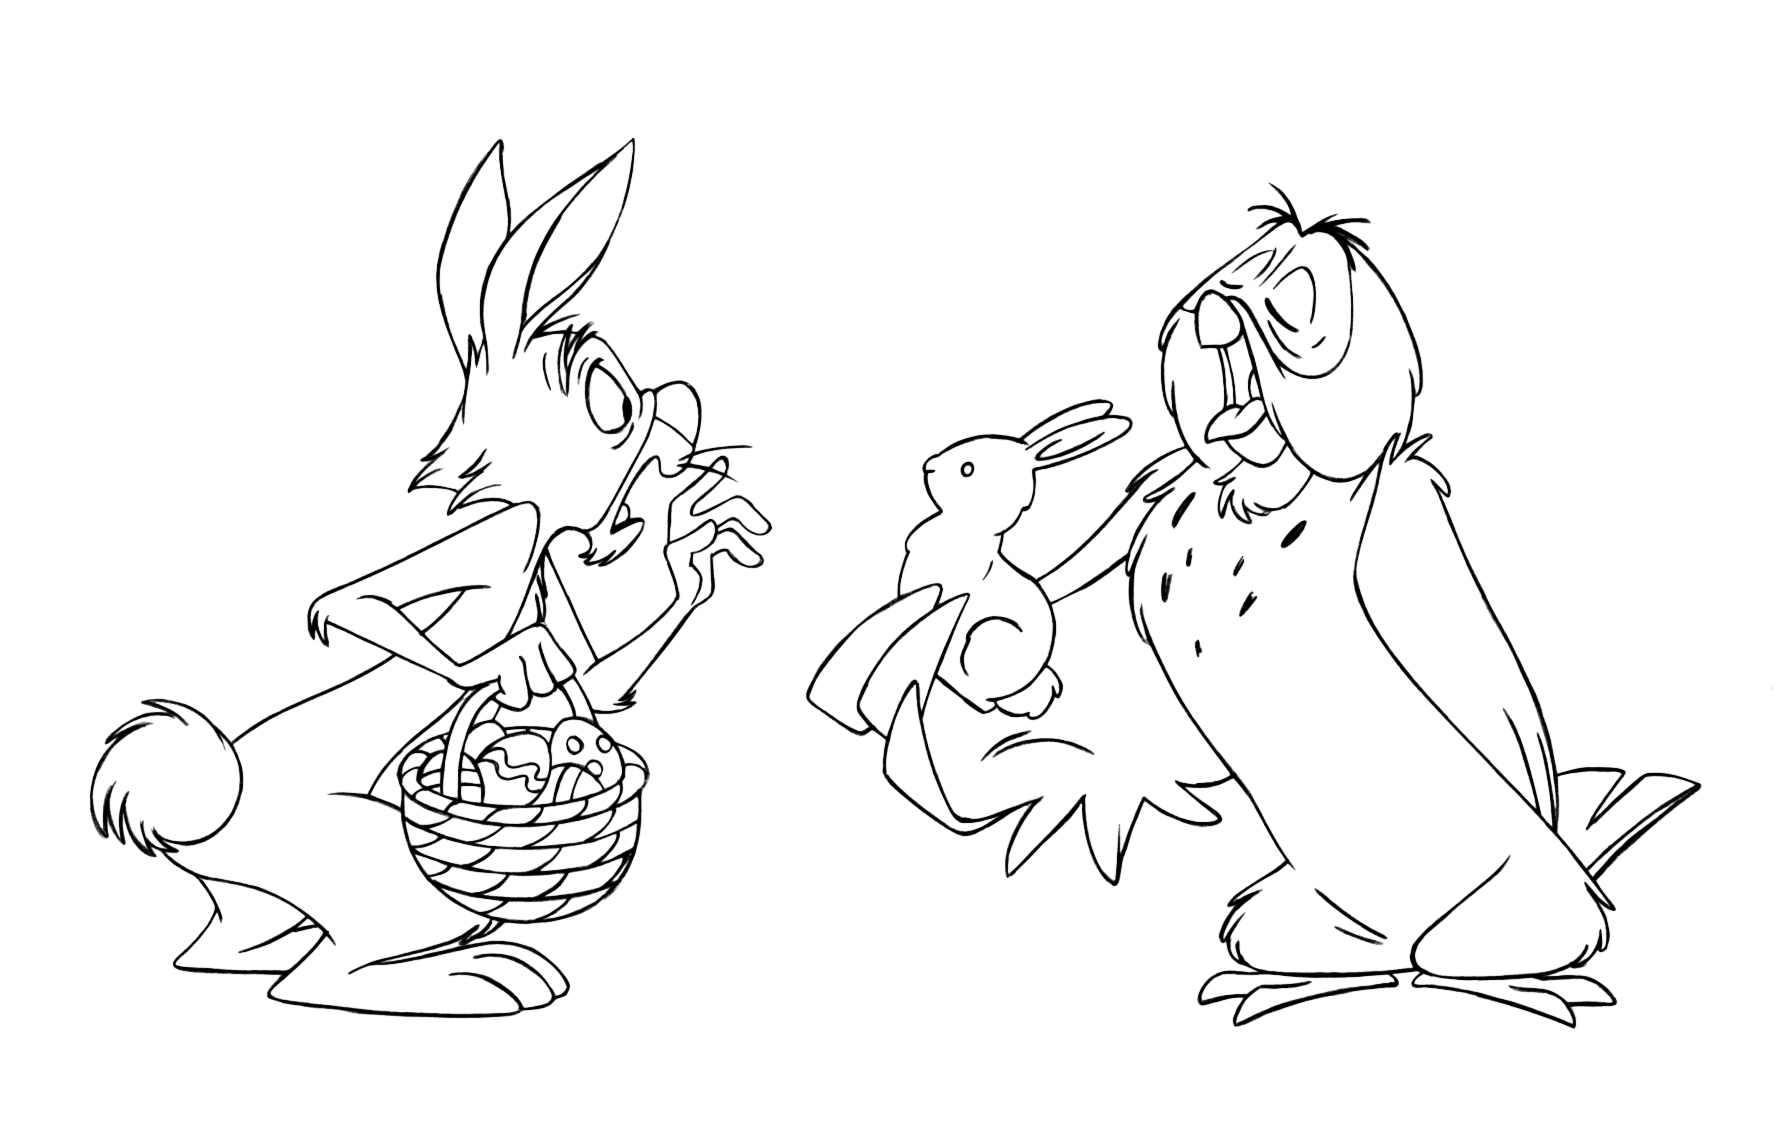 winnie the pooh coloring pages and easter egg decorating ideas - Winnie The Pooh Coloring Pages 2